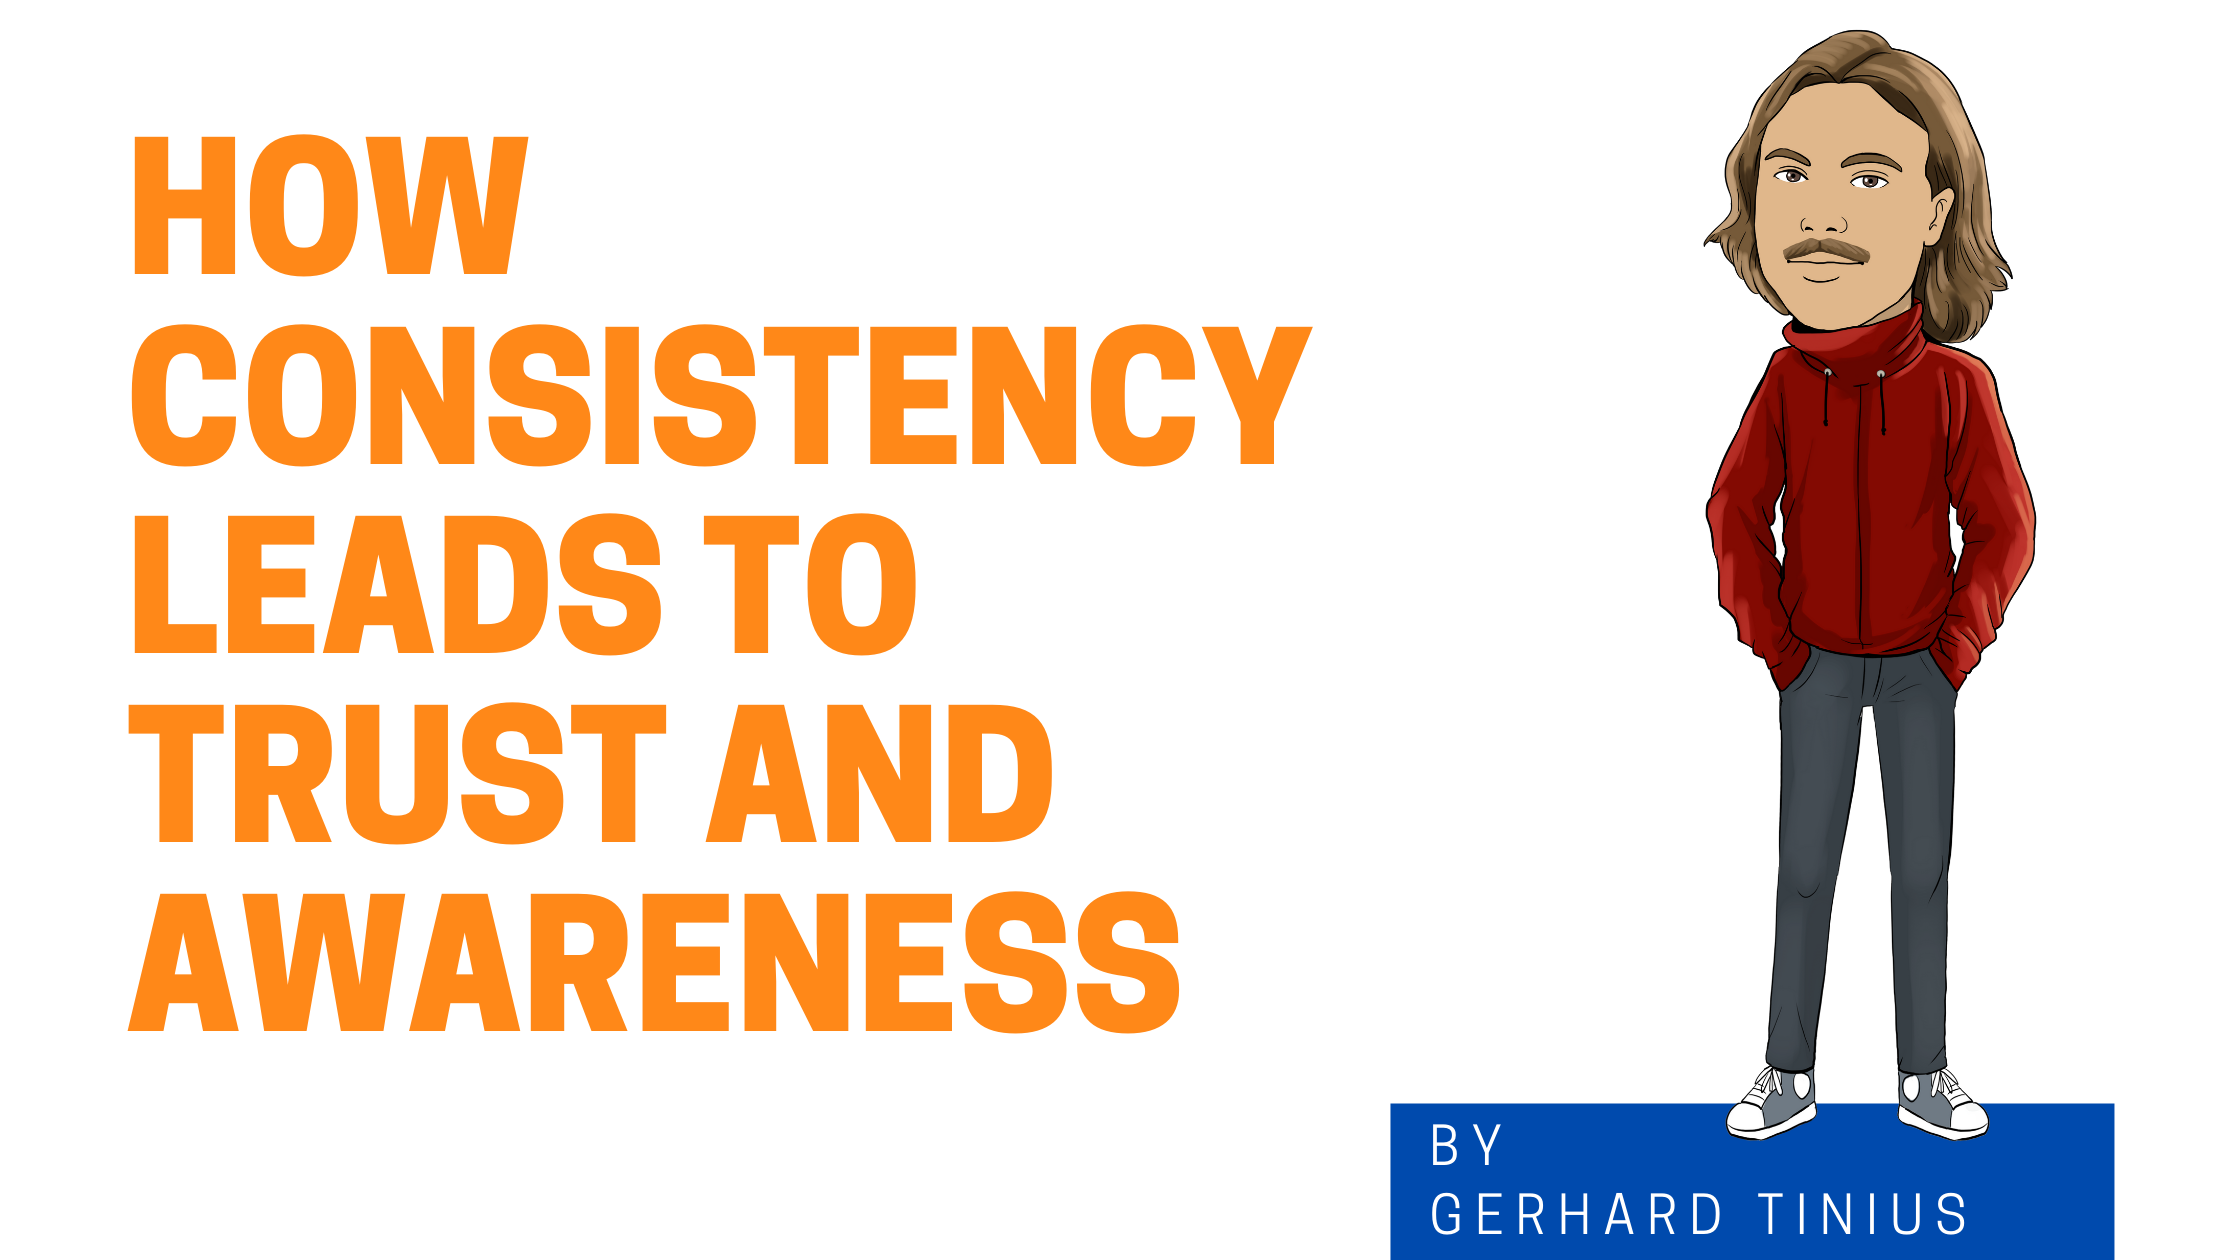 How consistency can lead to trust and awareness graphic with cartoon version of Gerhard